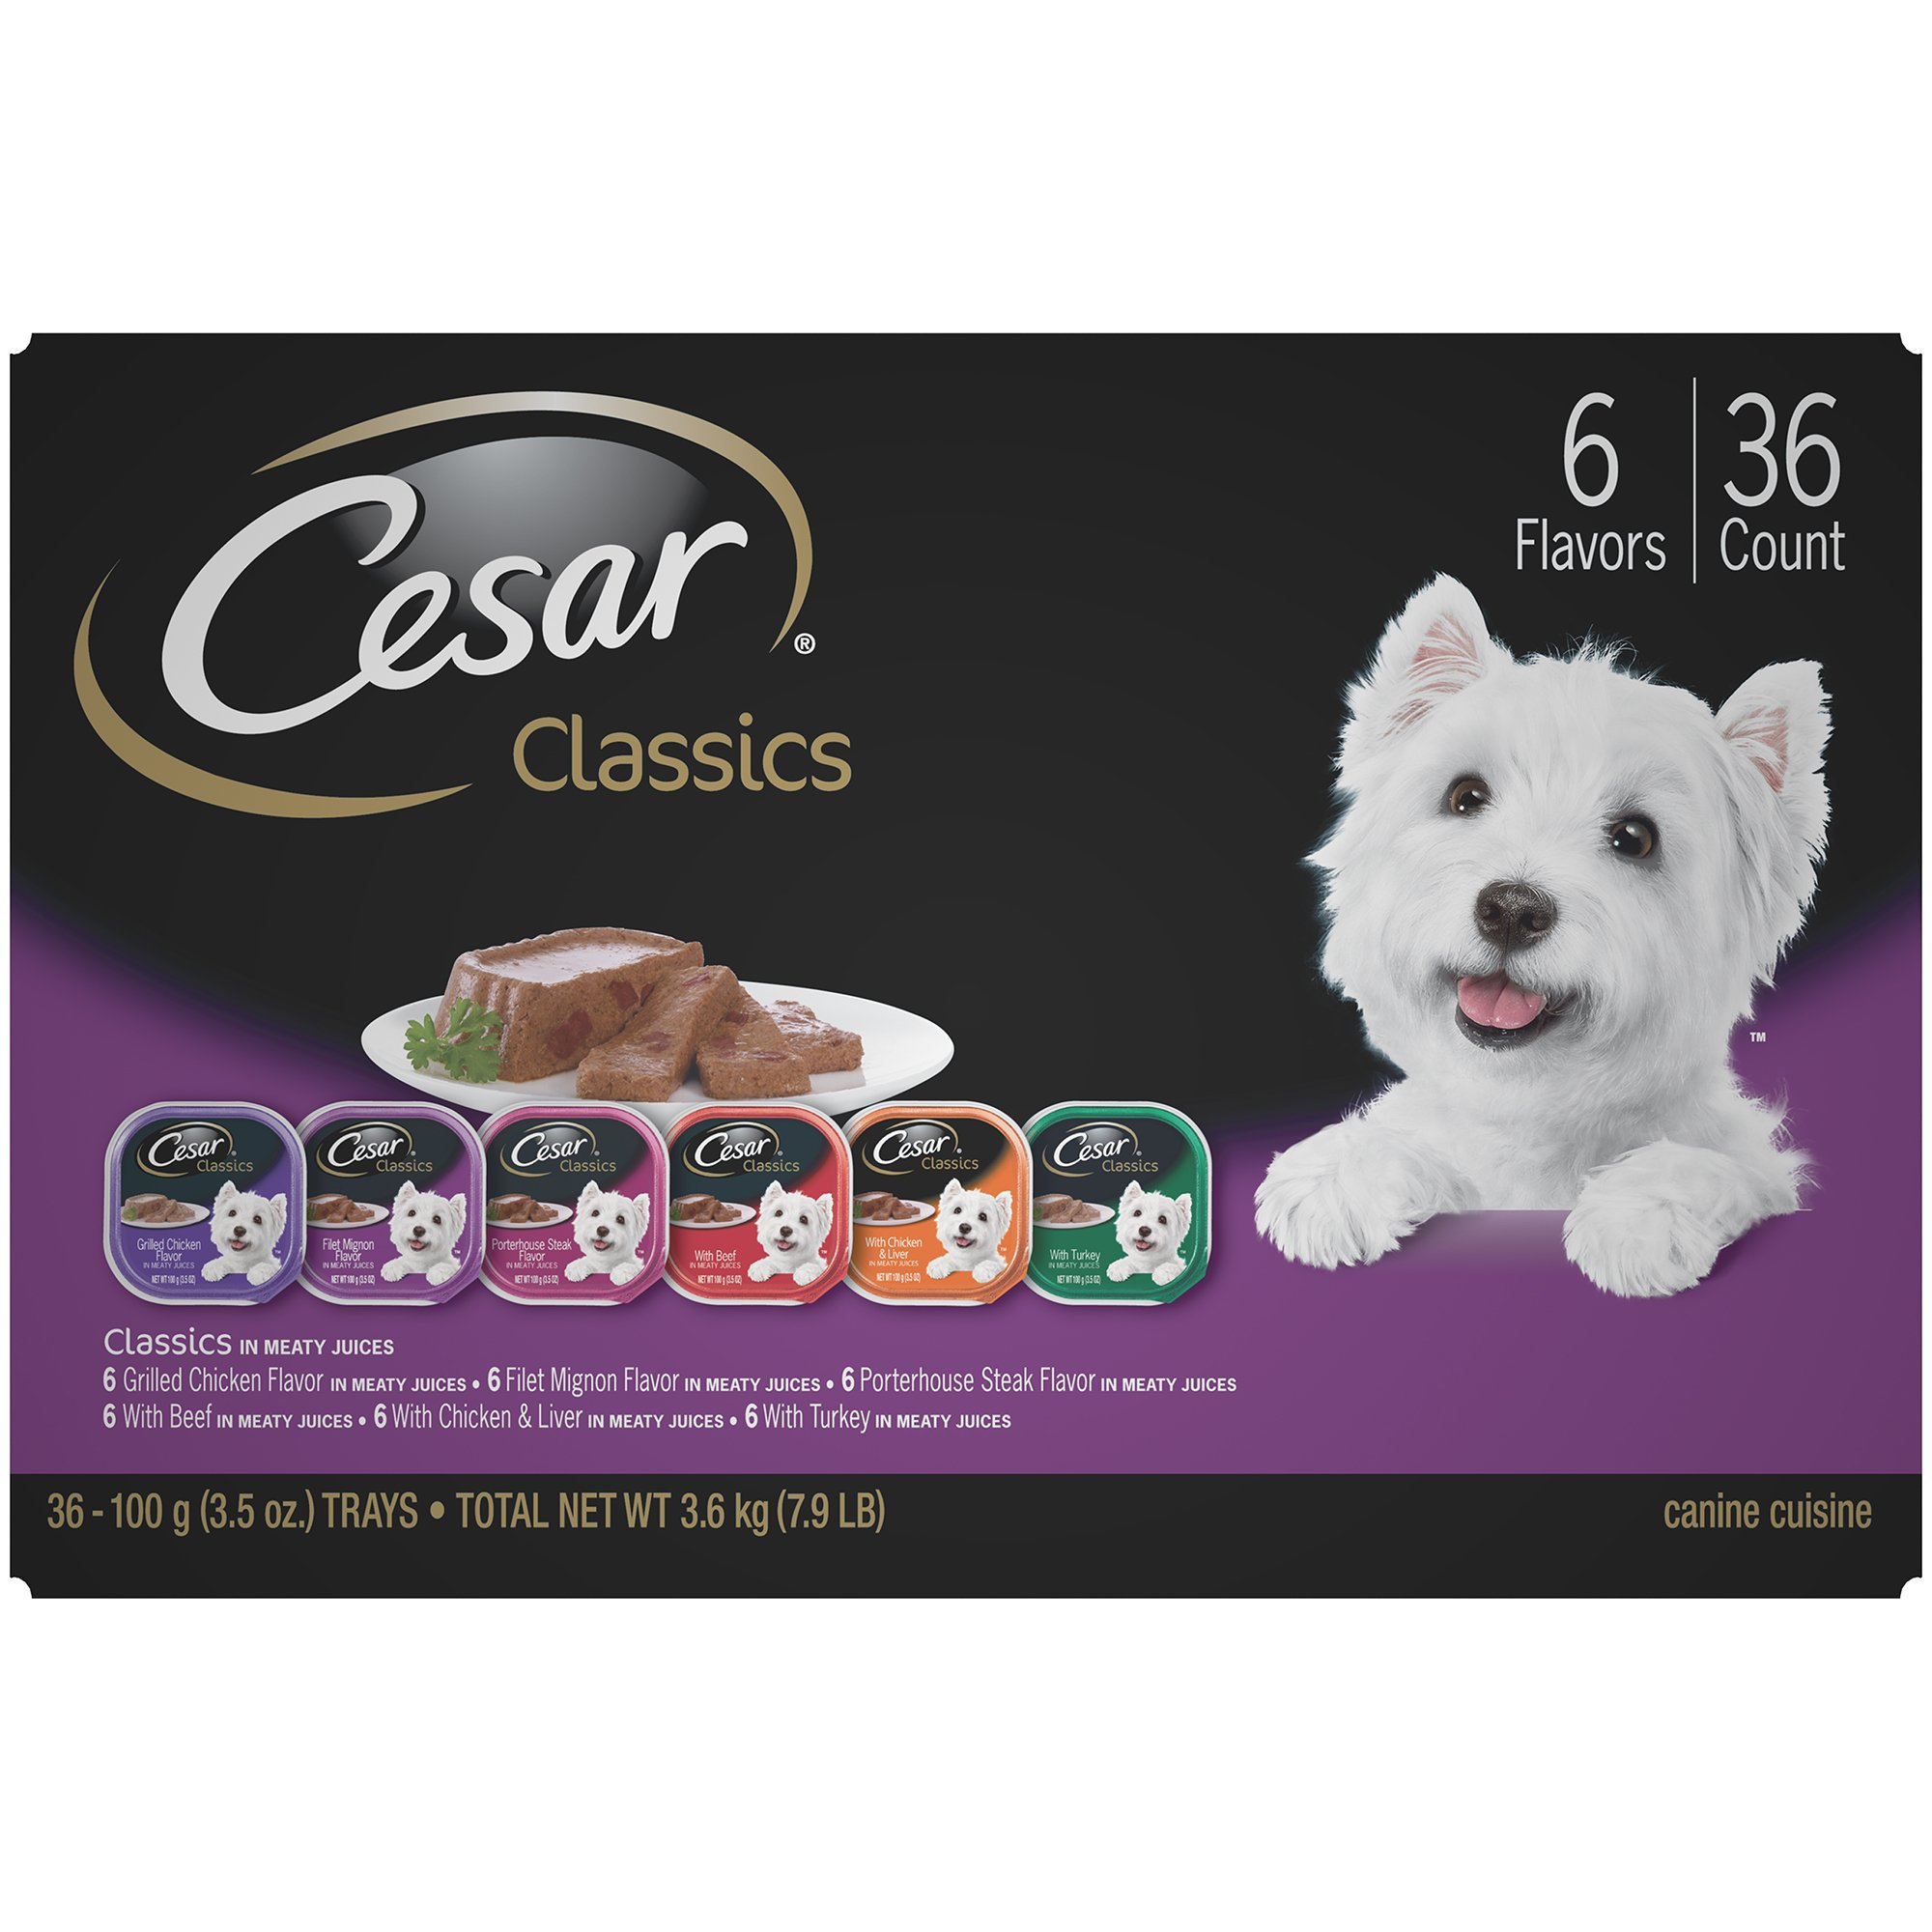 My Dog Will Only Eat Wet Food